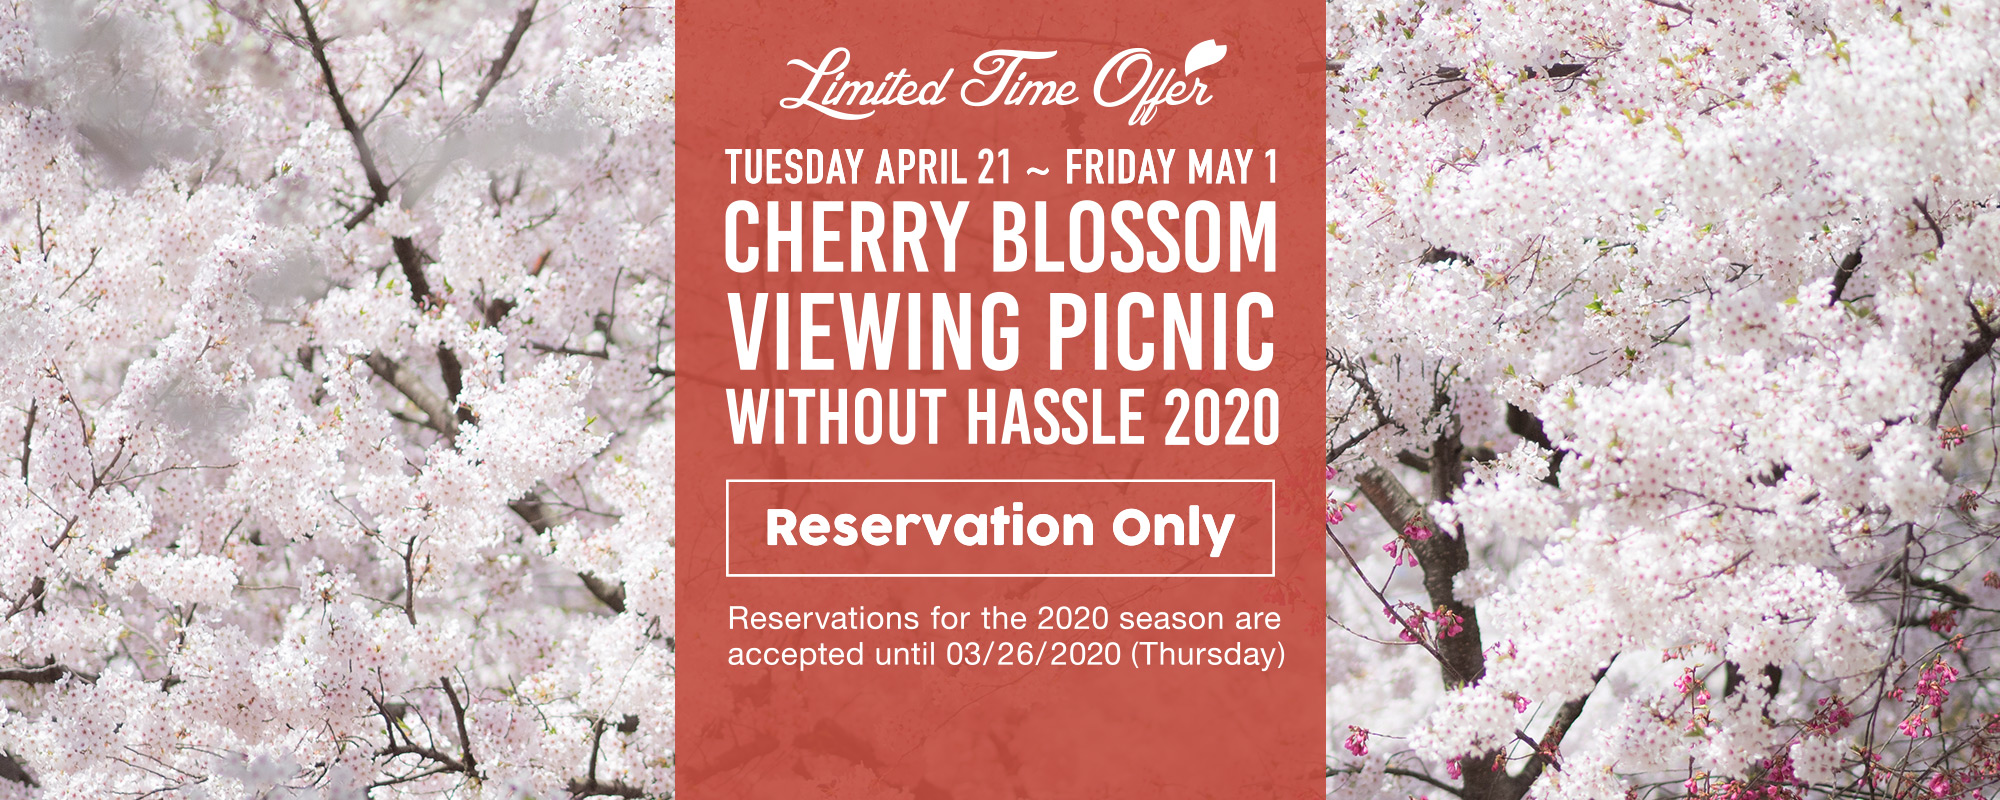 Tebura de Kanokai – Cherry Blossom Viewing Picnic without Hassle